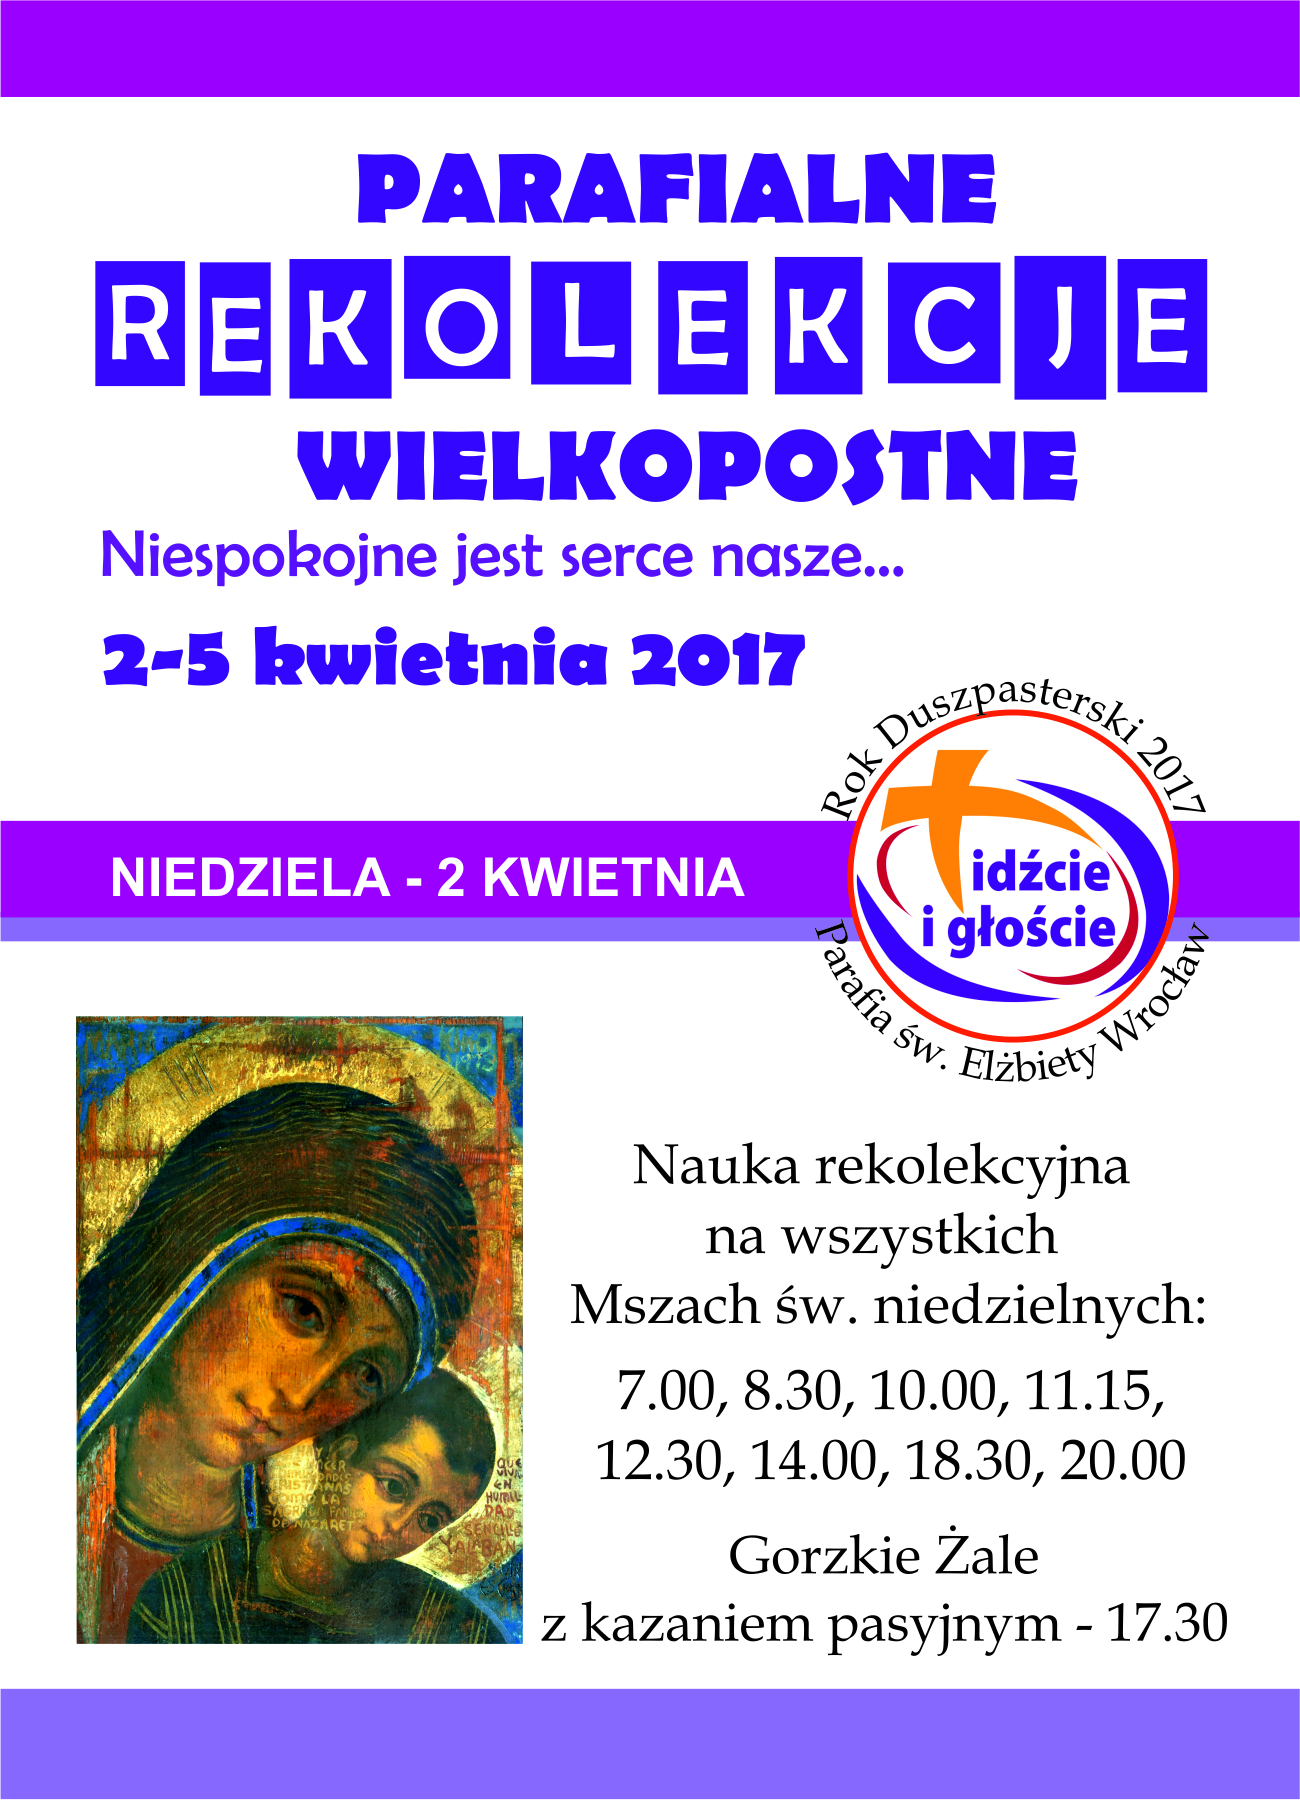 rekolekcje program str 1